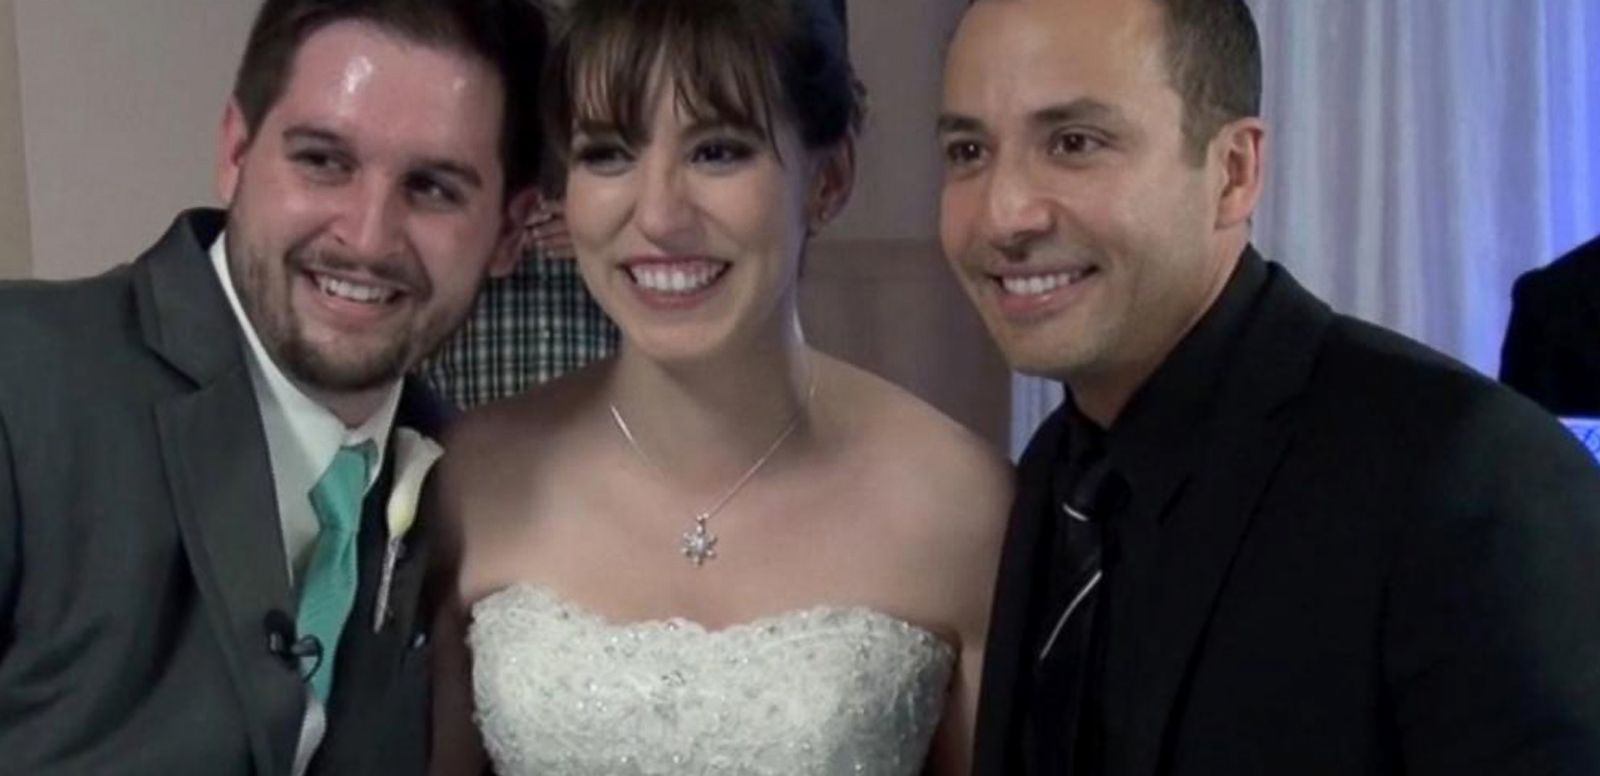 VIDEO: 'Backstreet's Back, Alright': Howie D Surprises Newlyweds at Wedding